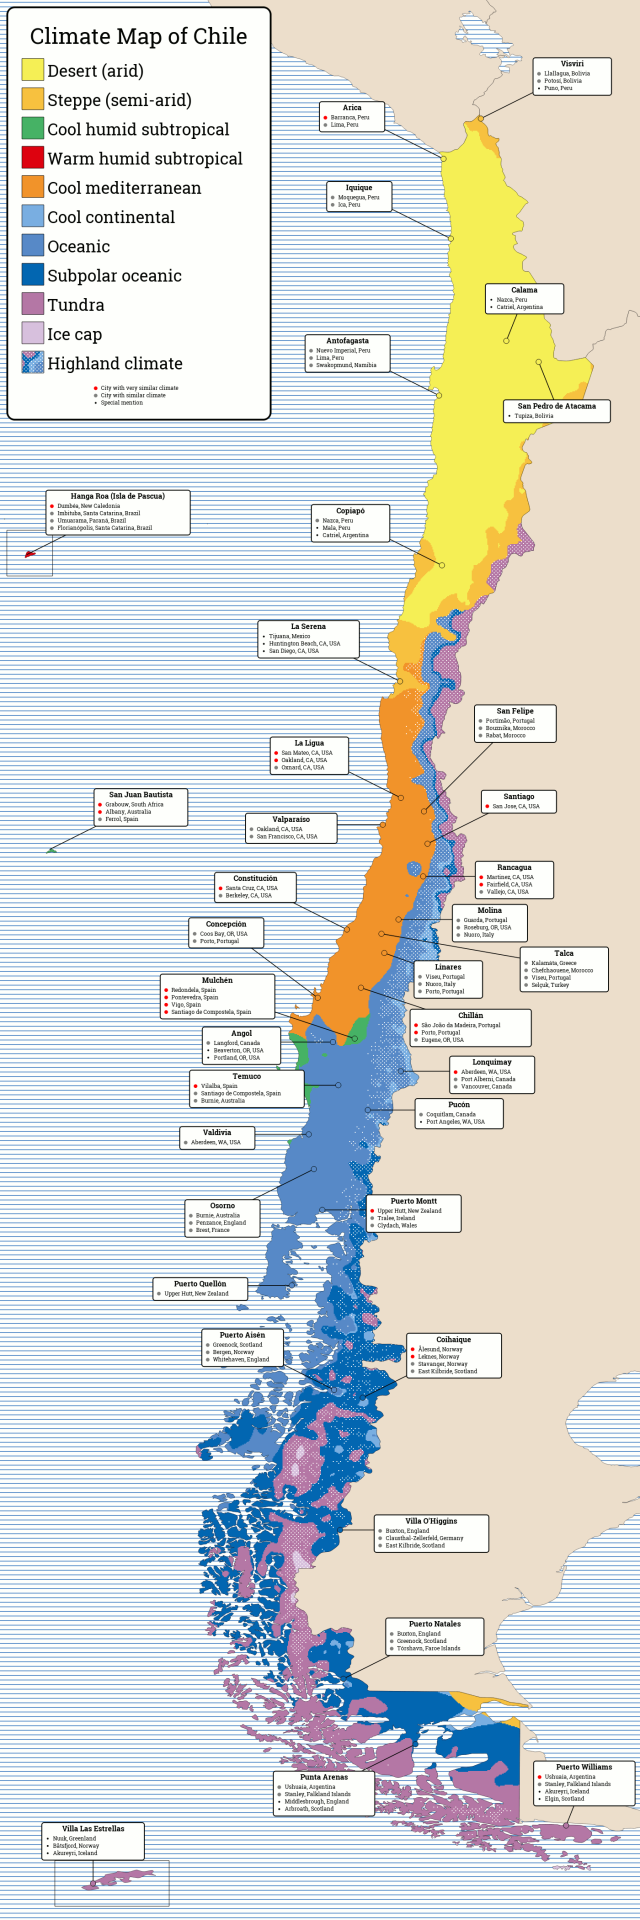 kppen trewartha climate map of chile and cities with similar climate